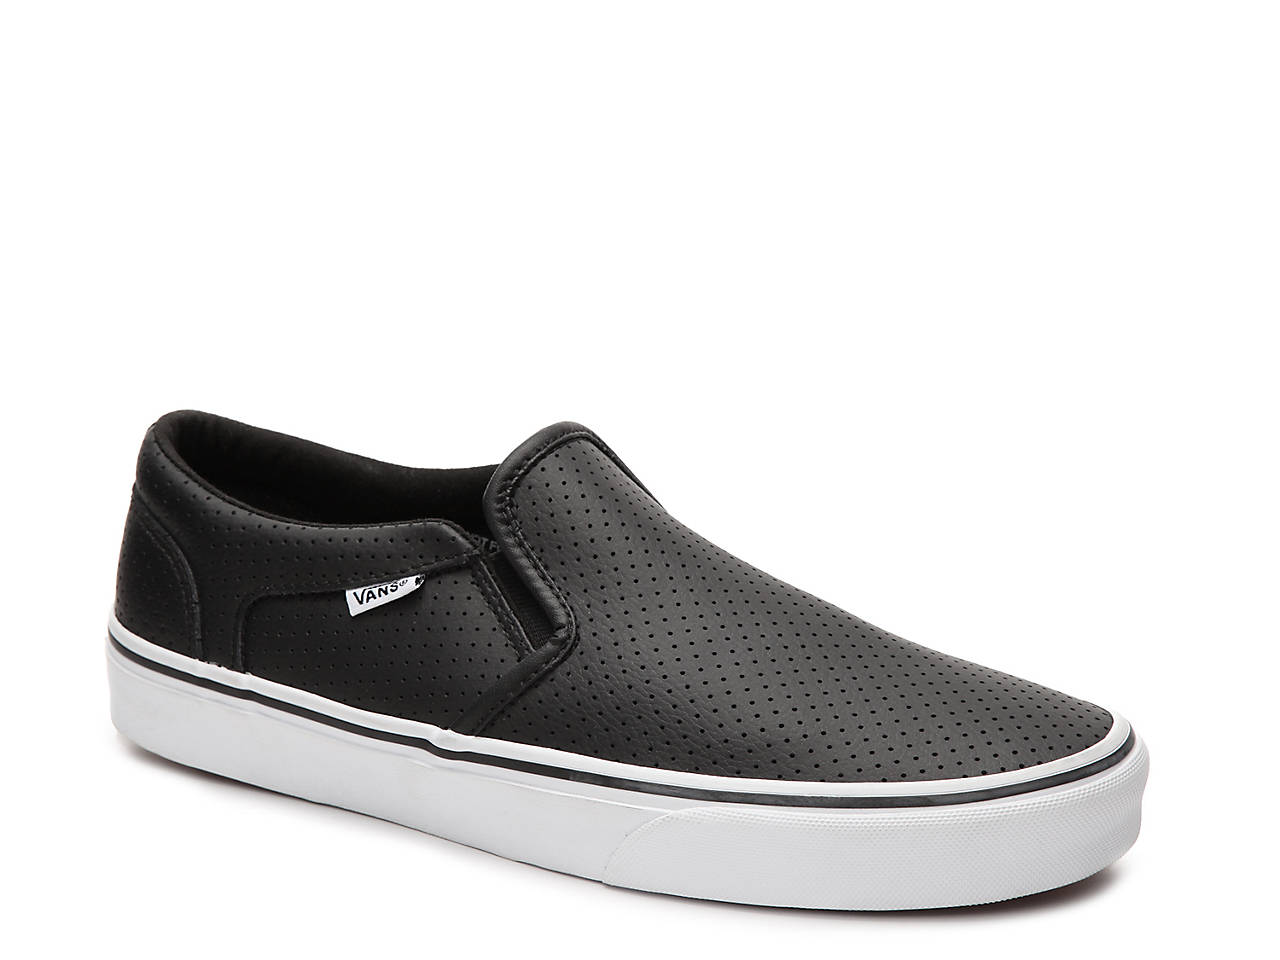 vans black and white leather slip on